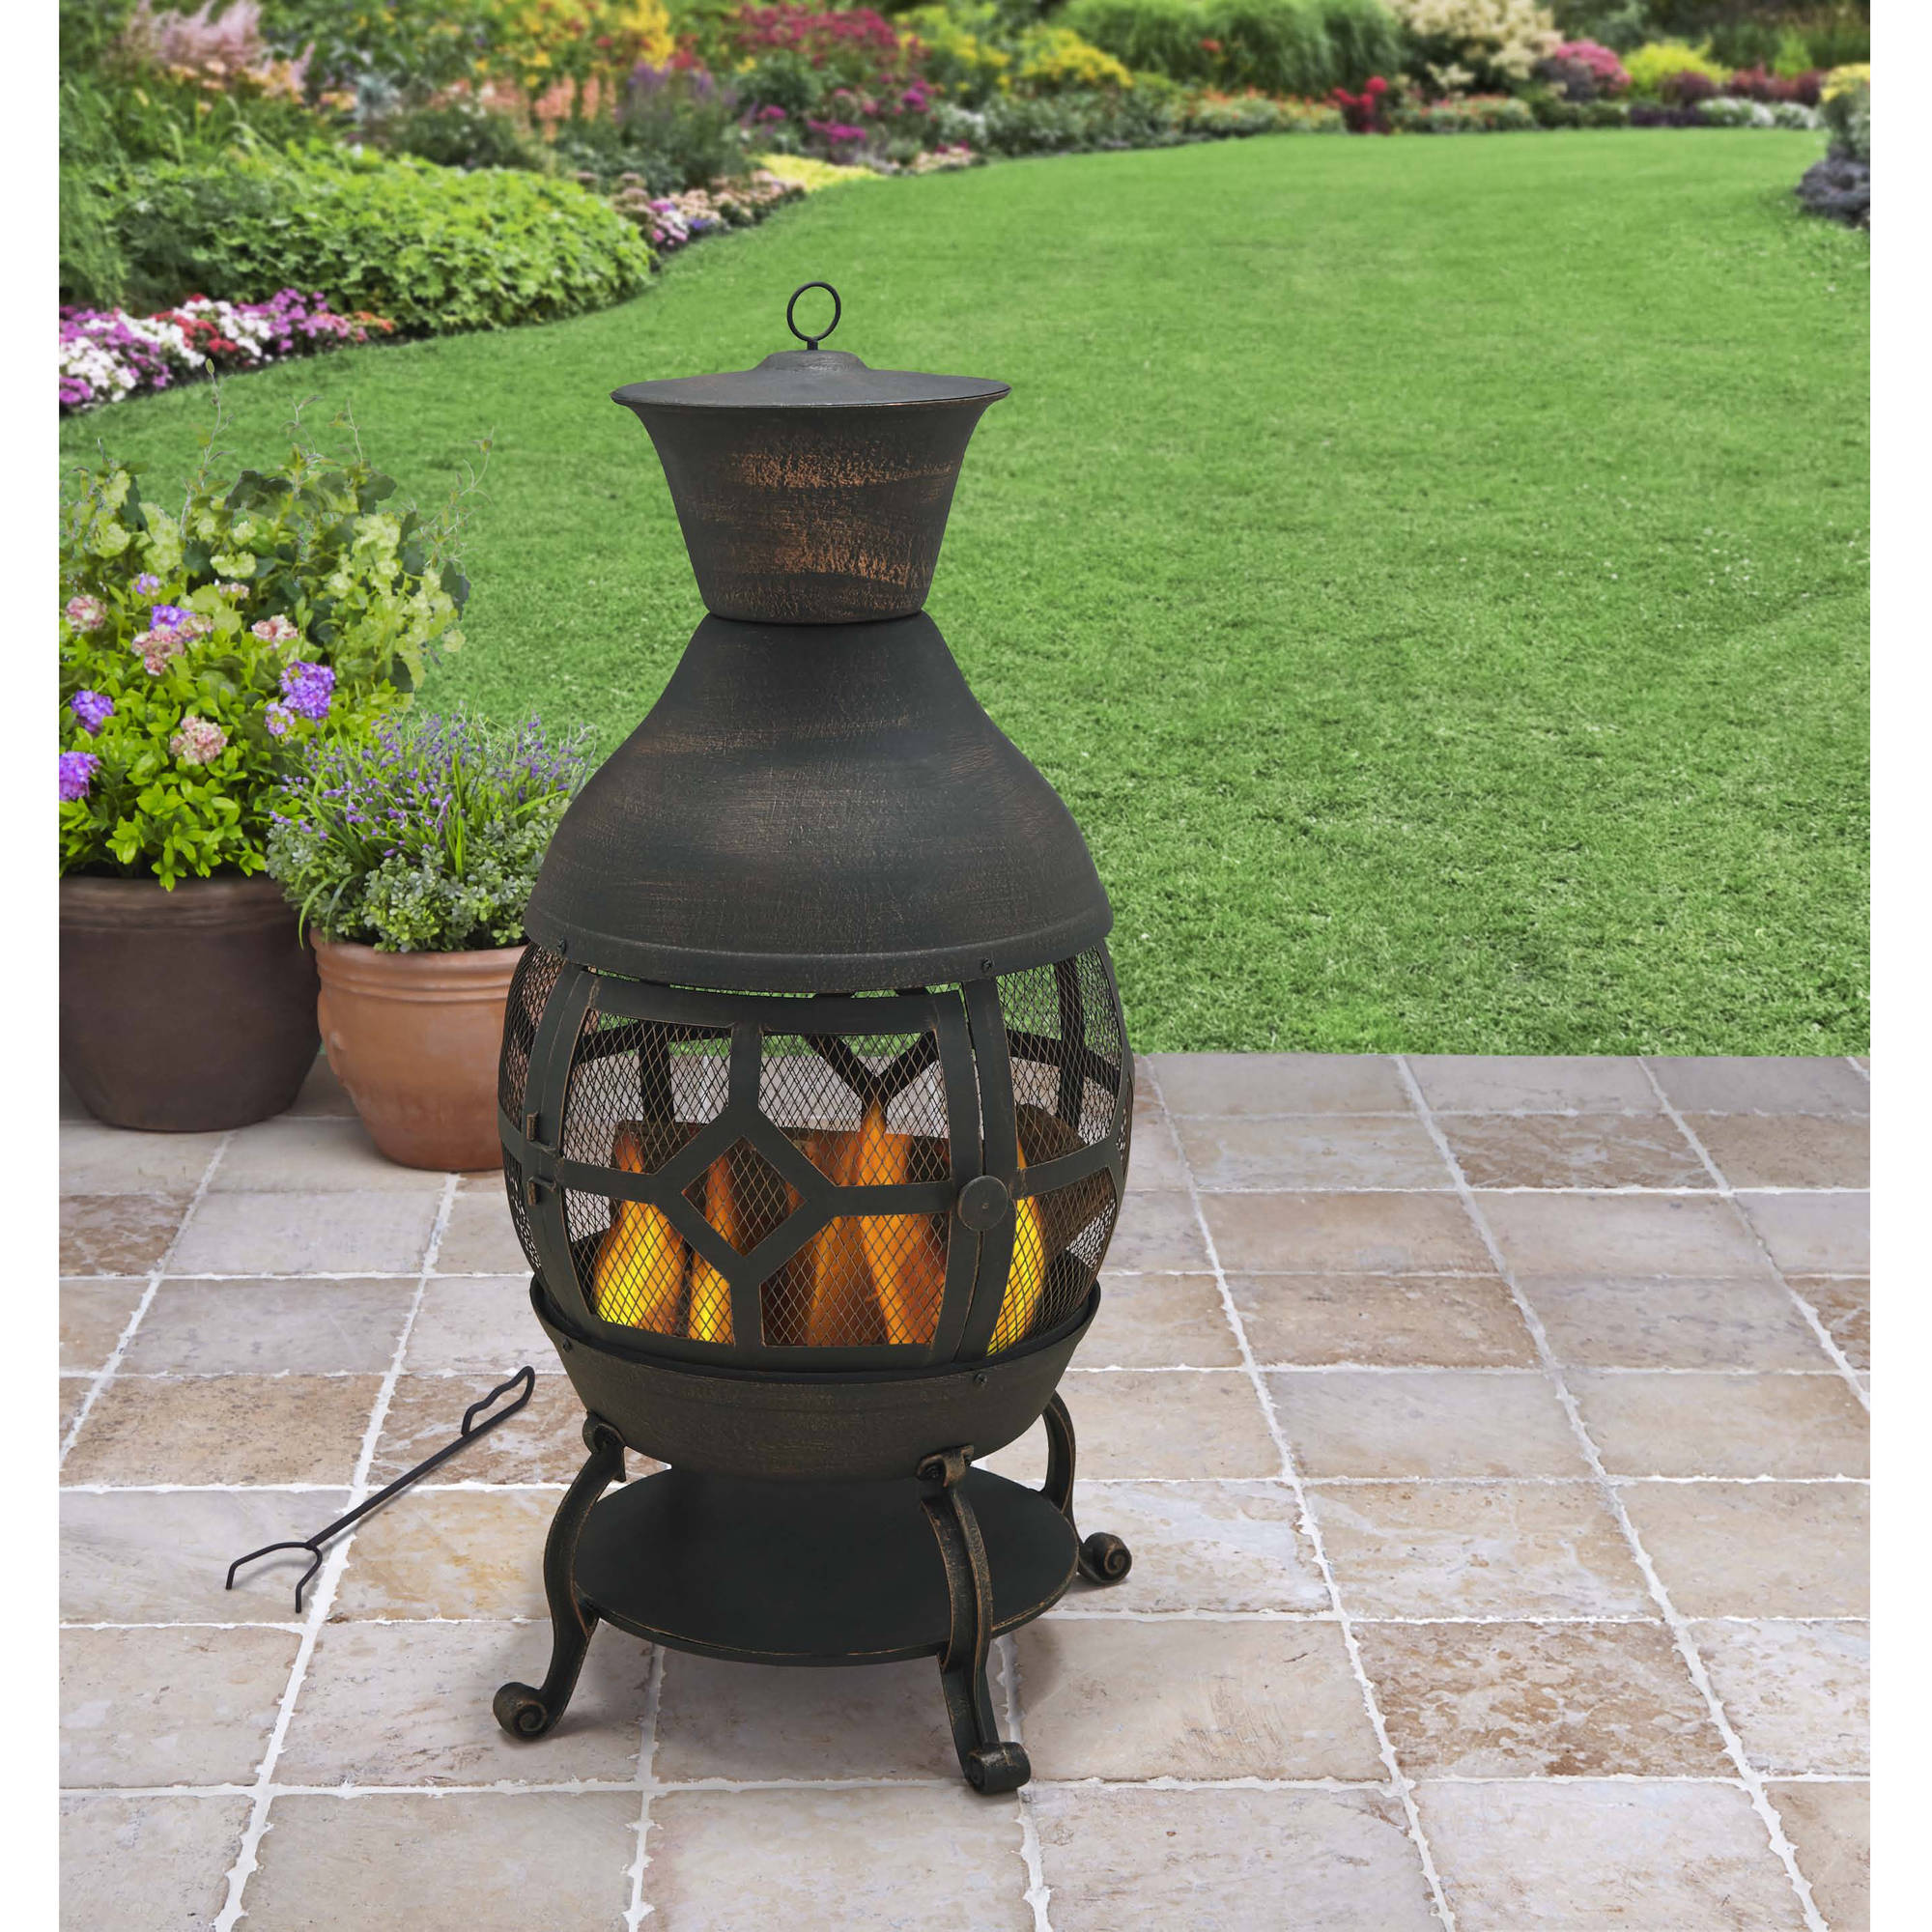 Better Homes And Gardens Cast Iron Chiminea, Antique Bronze   Walmart.com